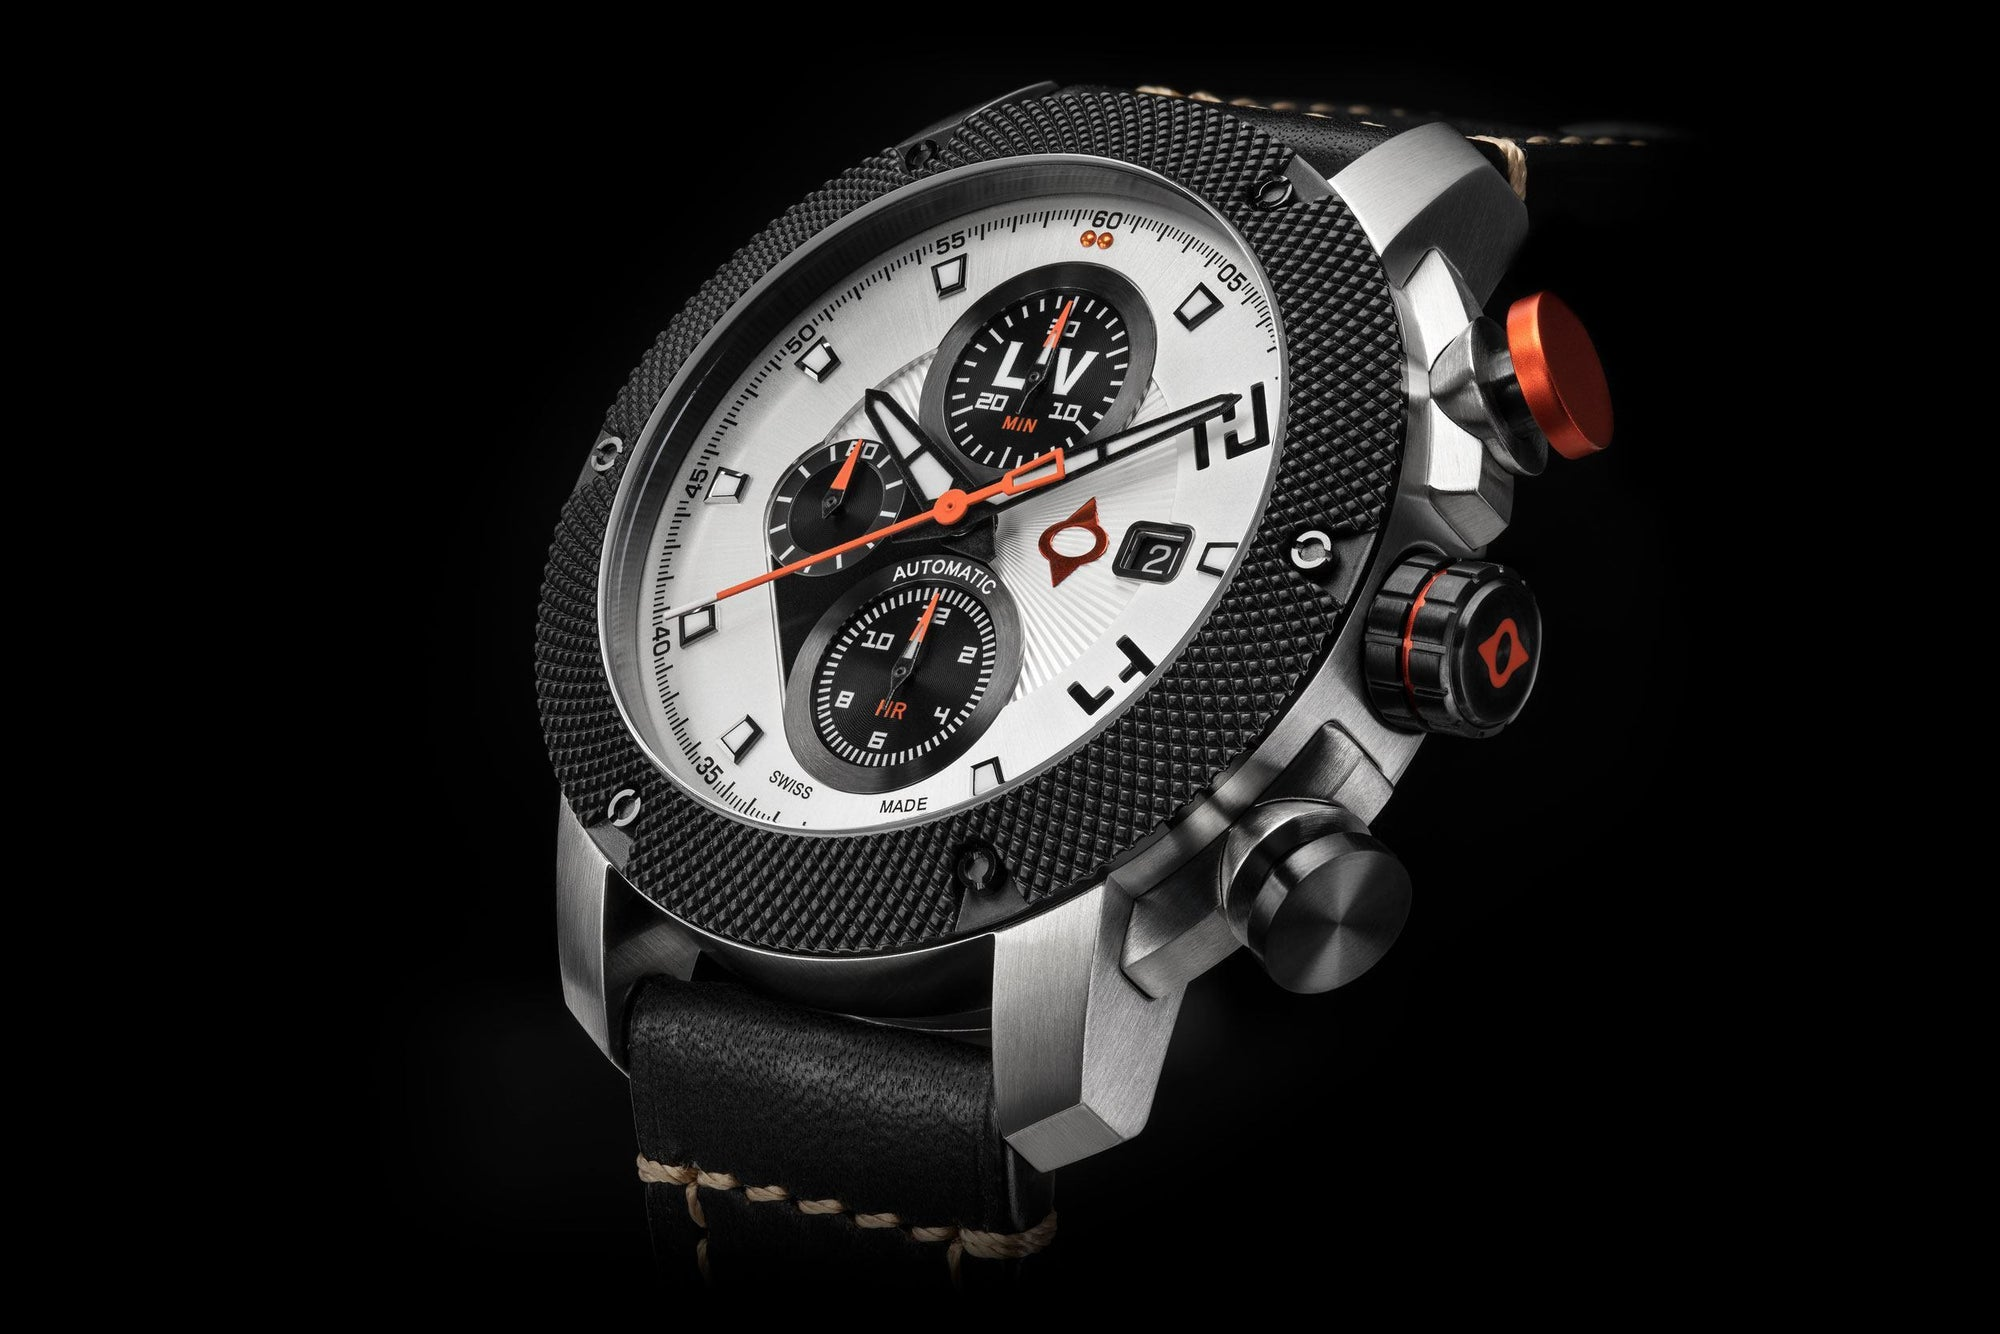 Swiss-Made GX Automatic Chronograph by LIV Watches